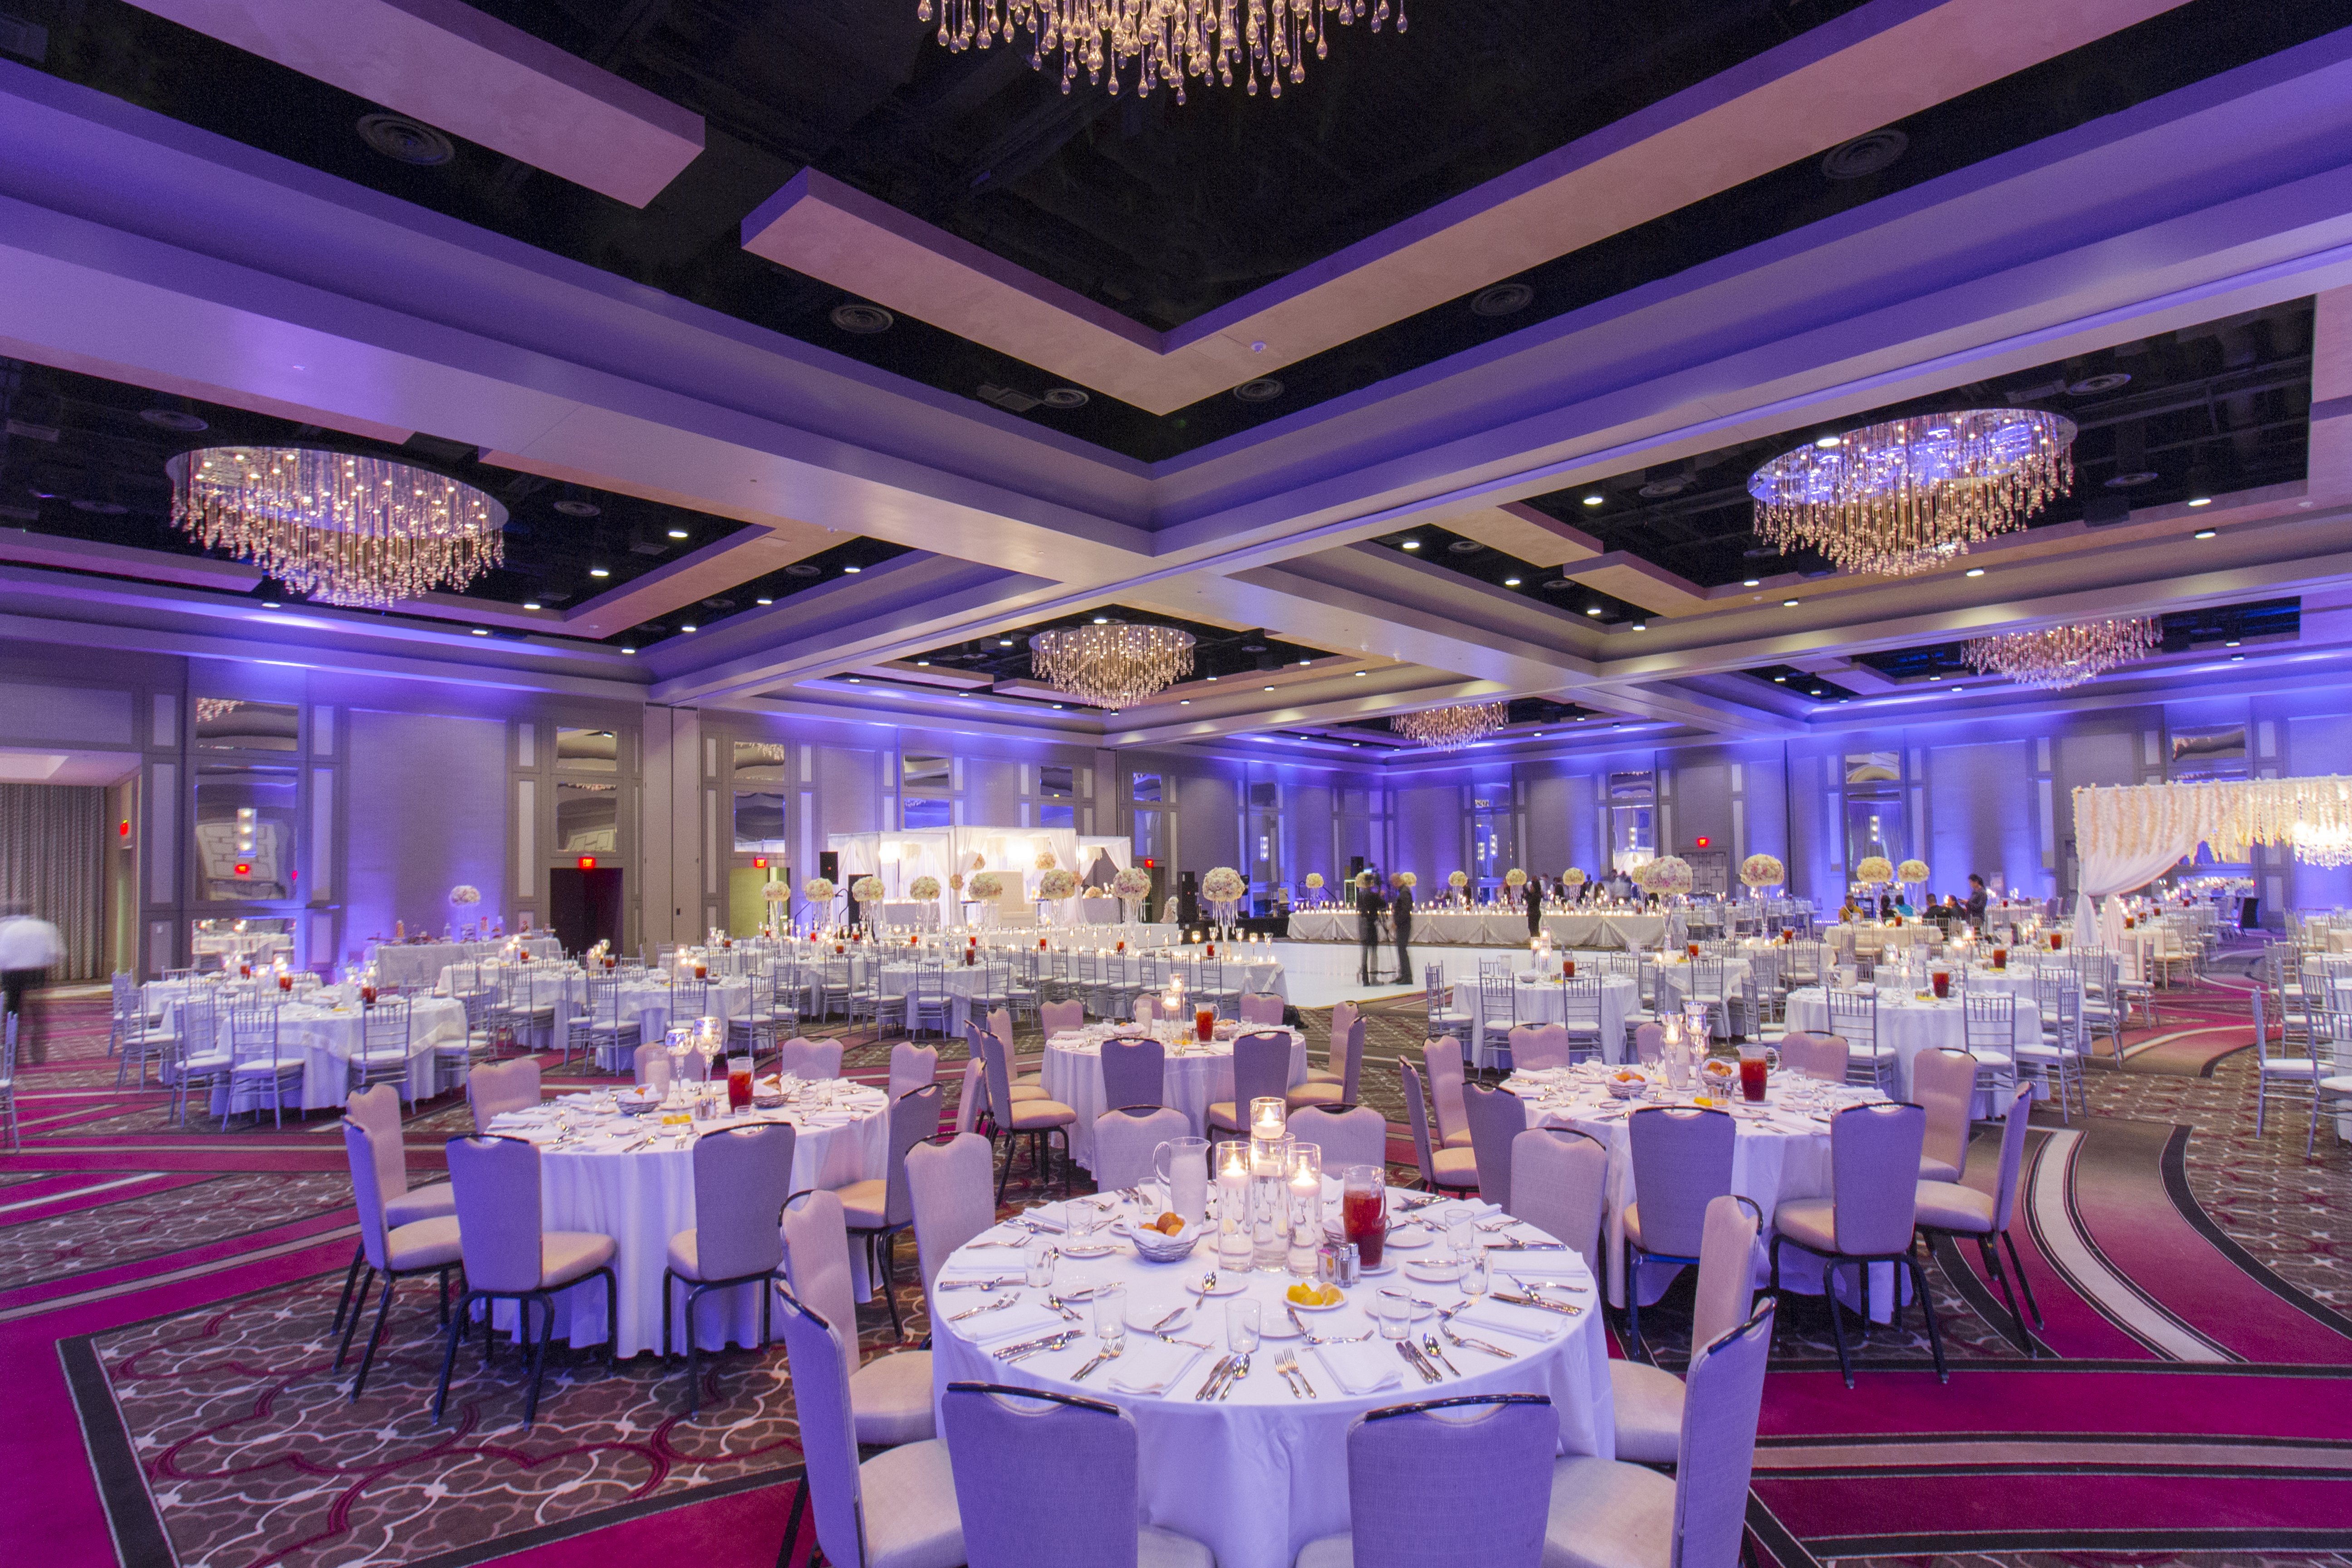 Hyatt Regency New Orleans Venue New Orleans Price It Out